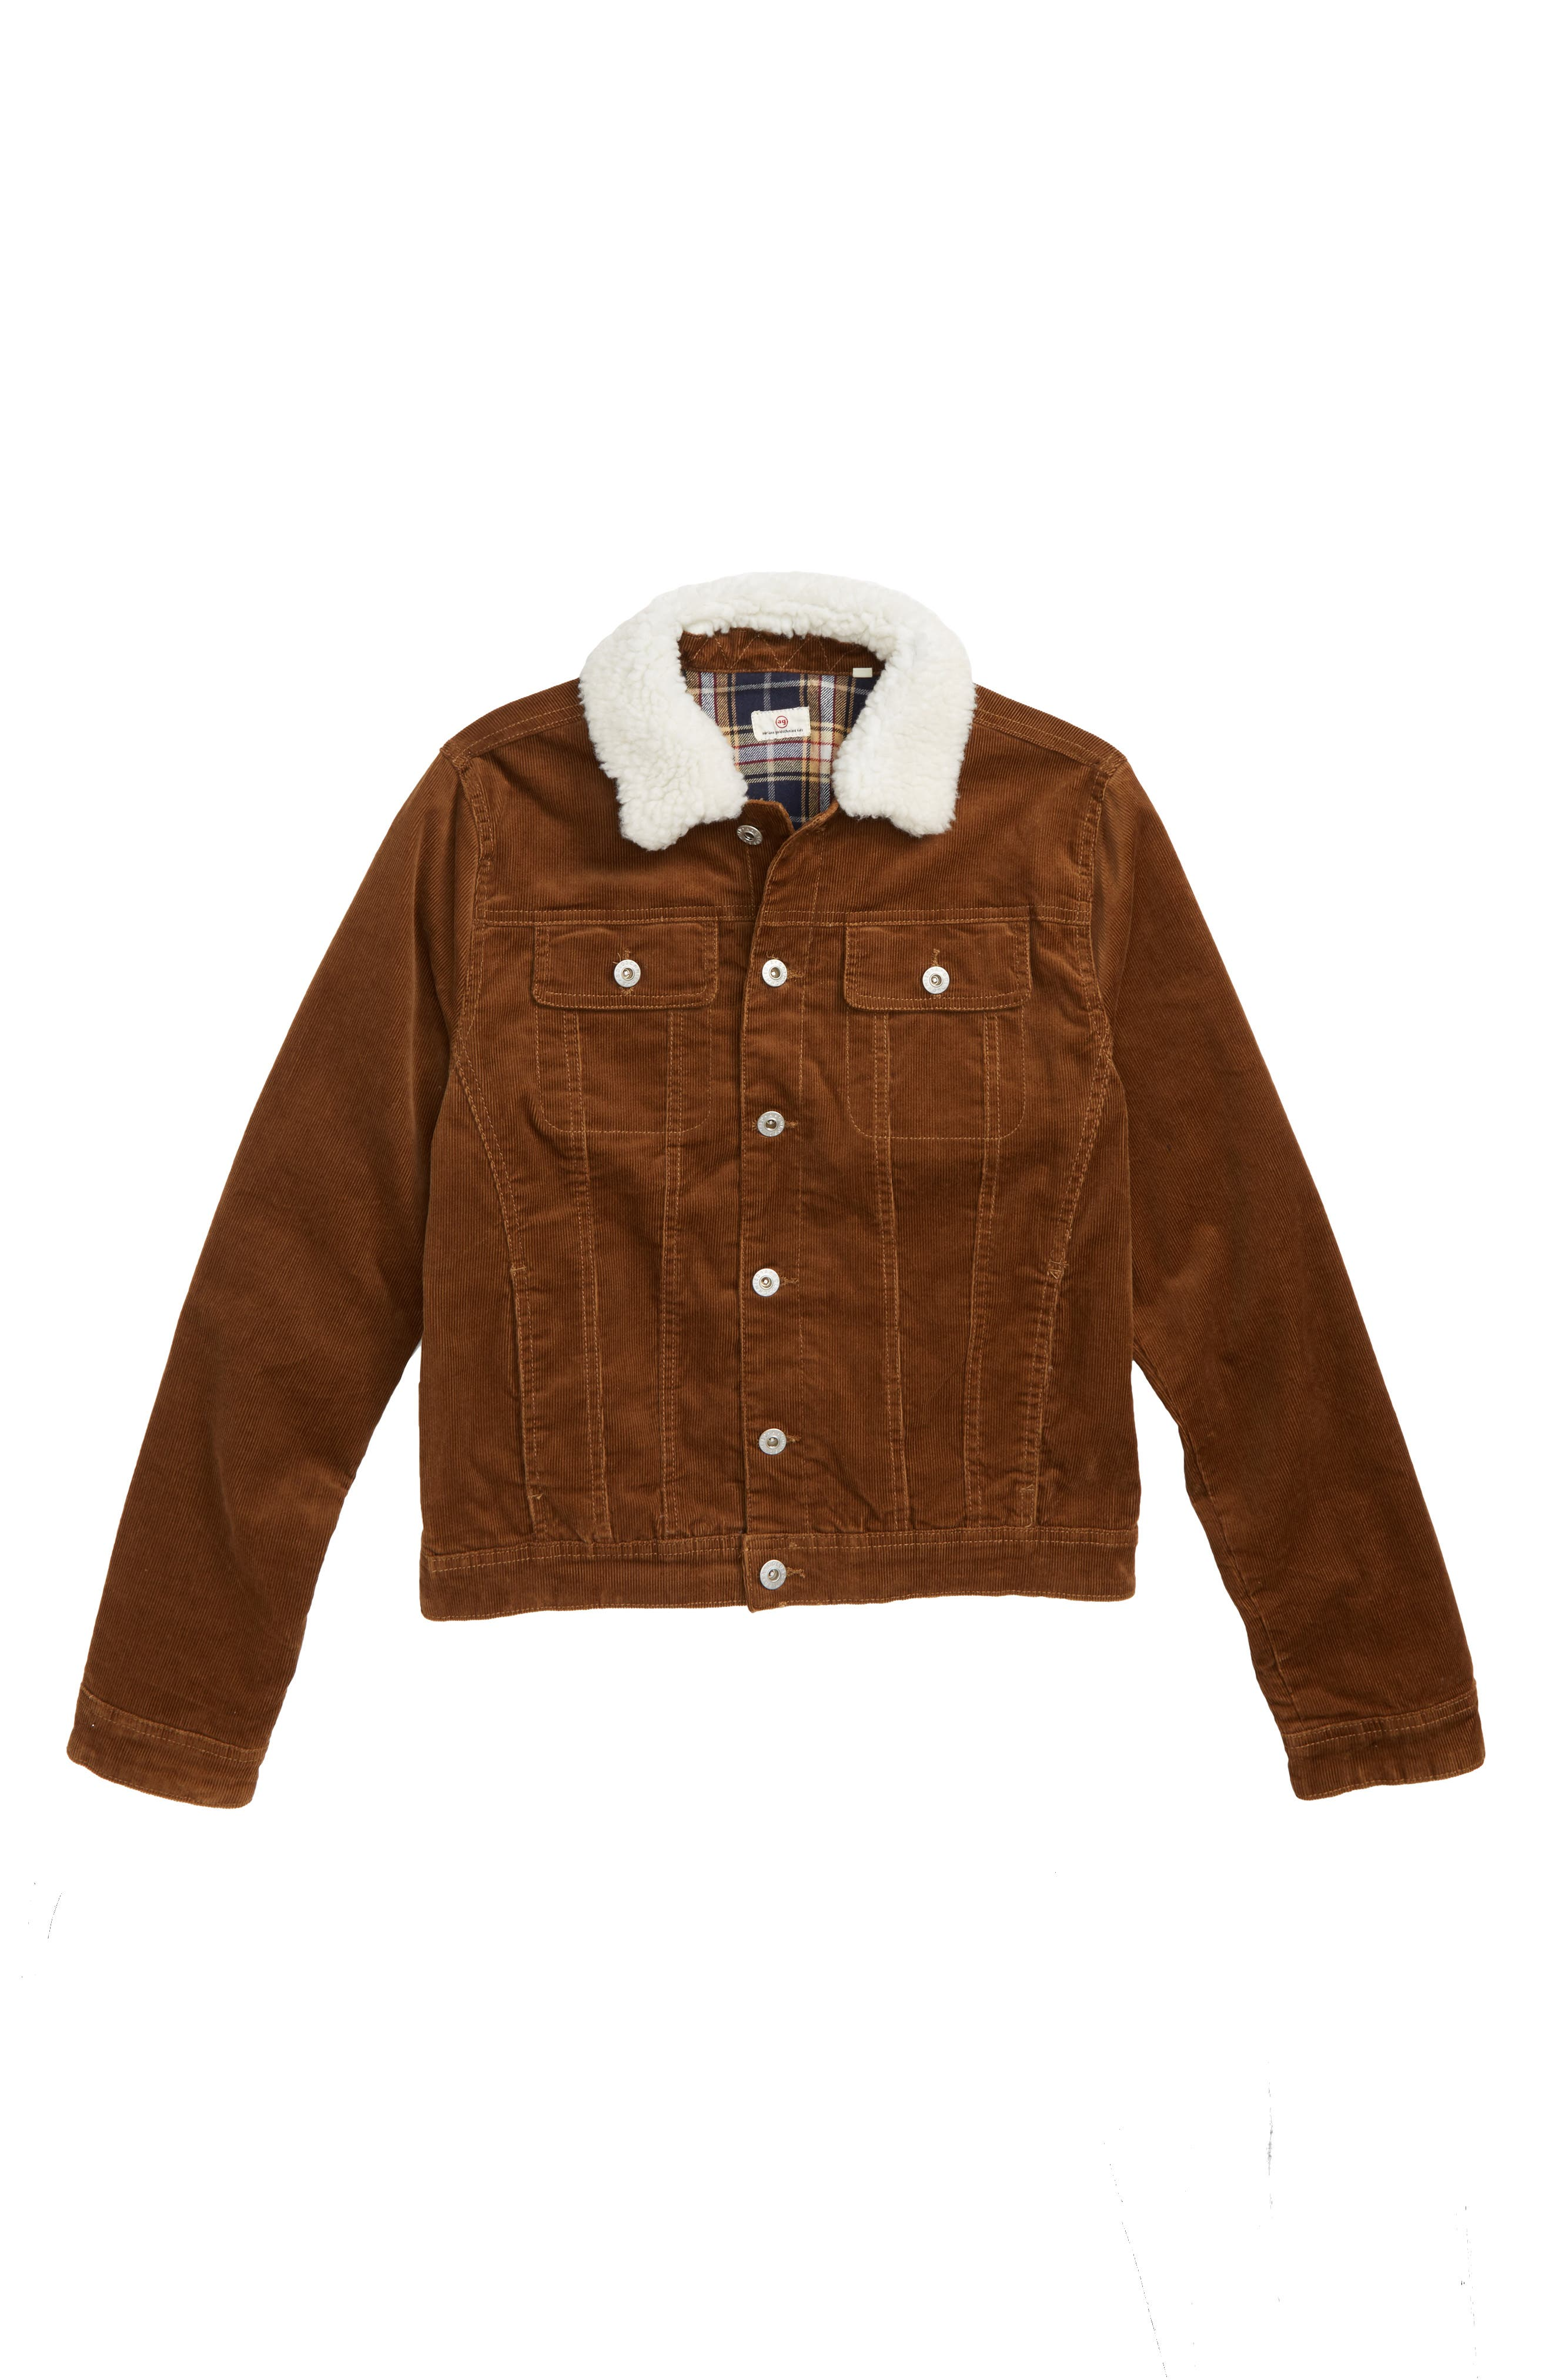 Beau Corduroy Jacket with Faux Fur Collar,                             Main thumbnail 1, color,                             200